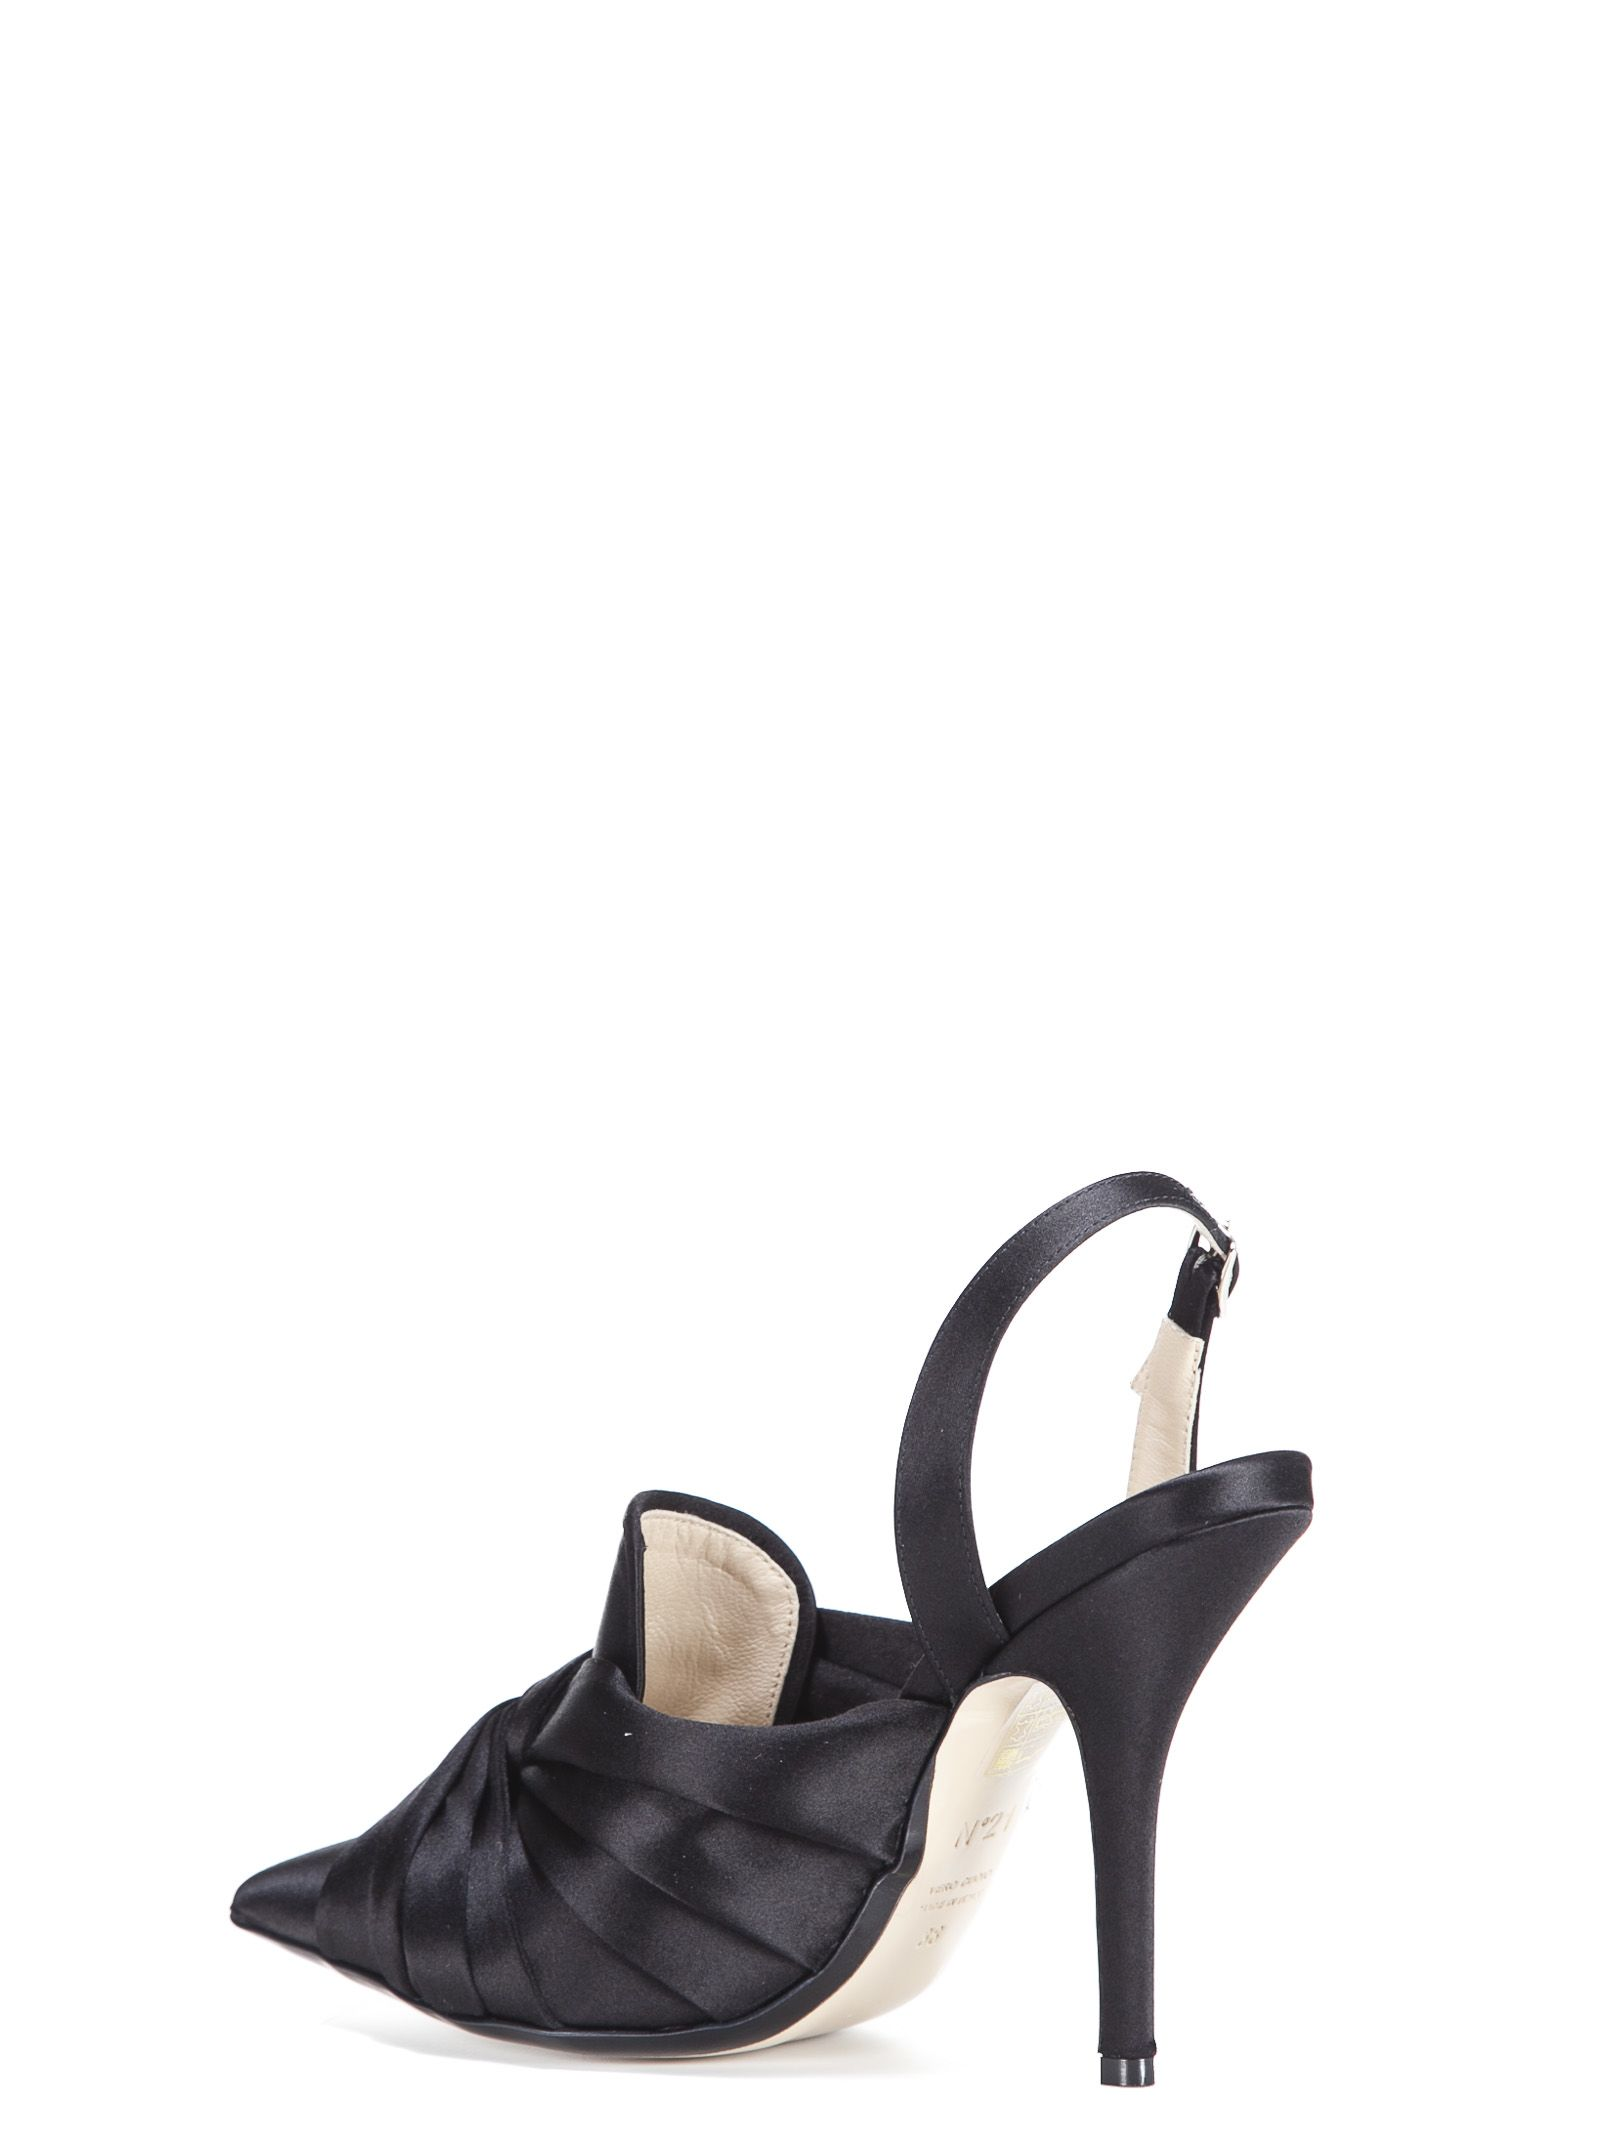 slingback twisted detail pumps - Black N��21